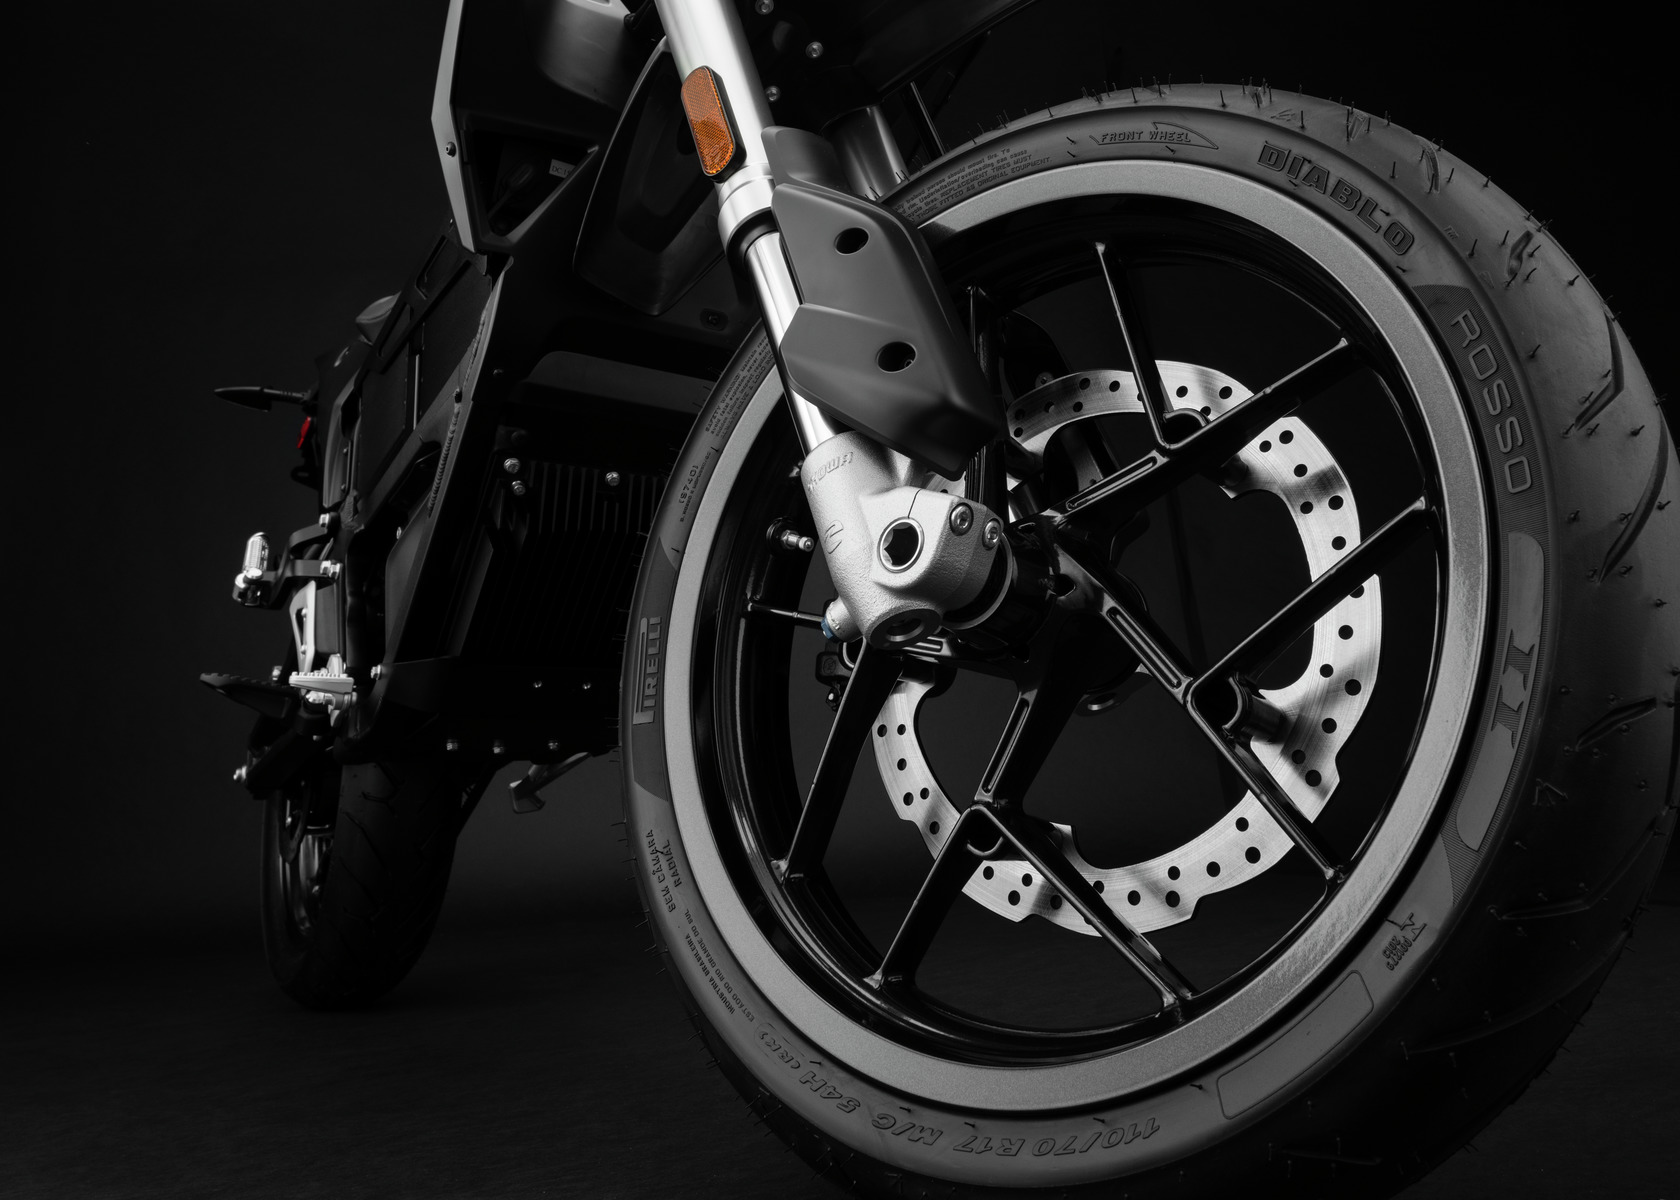 2018 Zero FXS Electric Motorcycle: Front Wheel